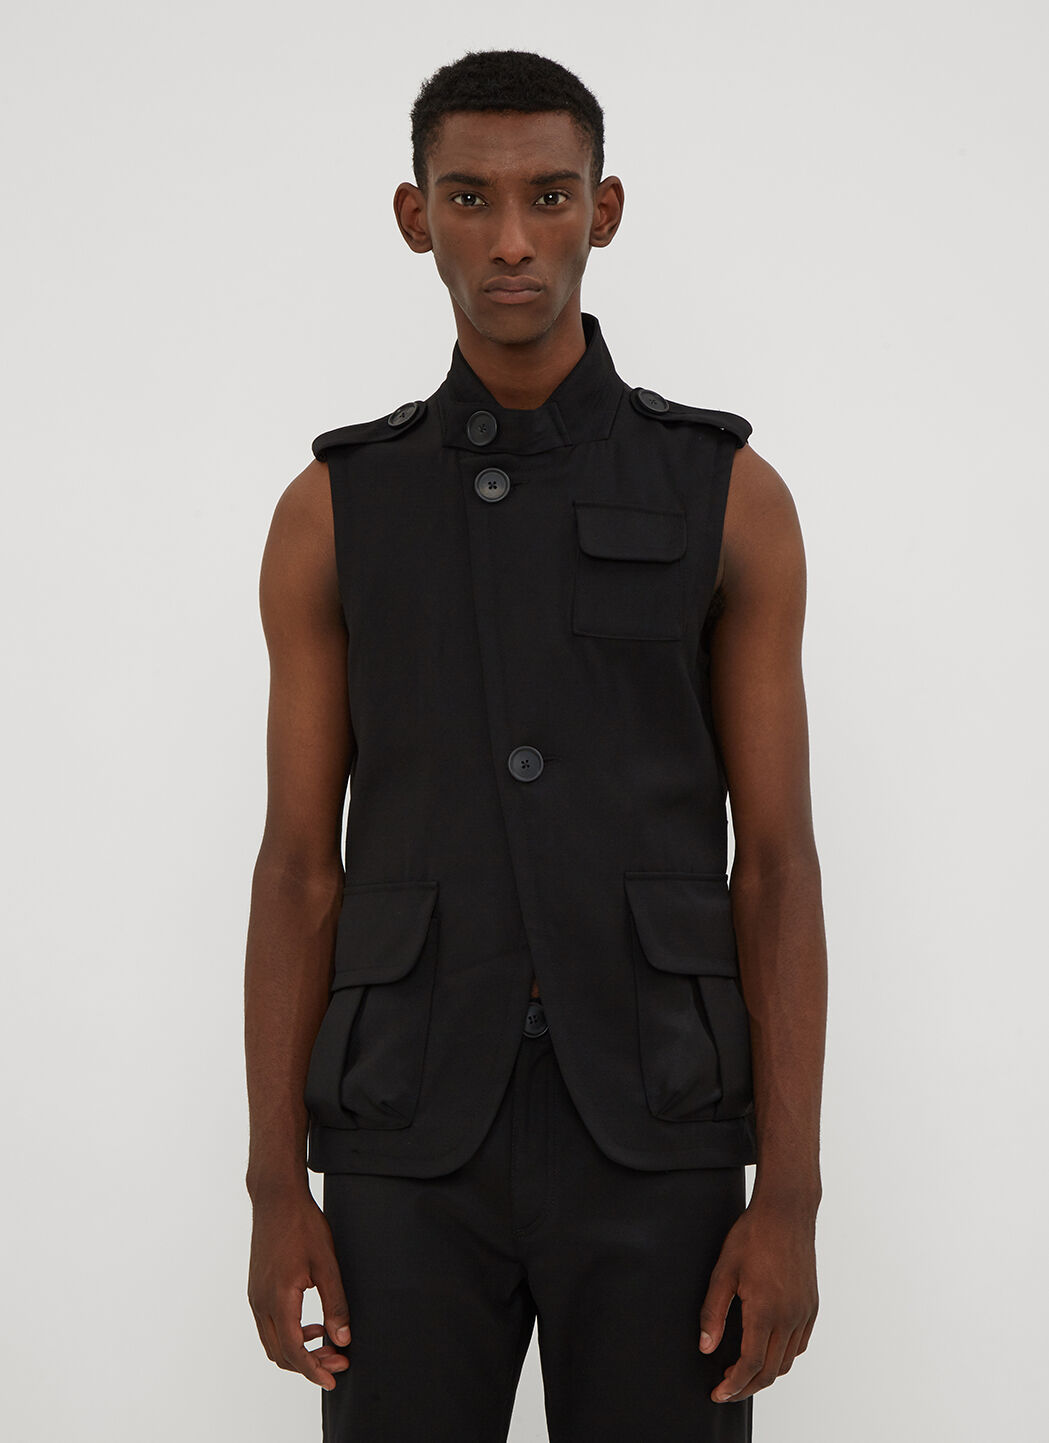 Wales Bonner Military Sleeveless Jacket in Black